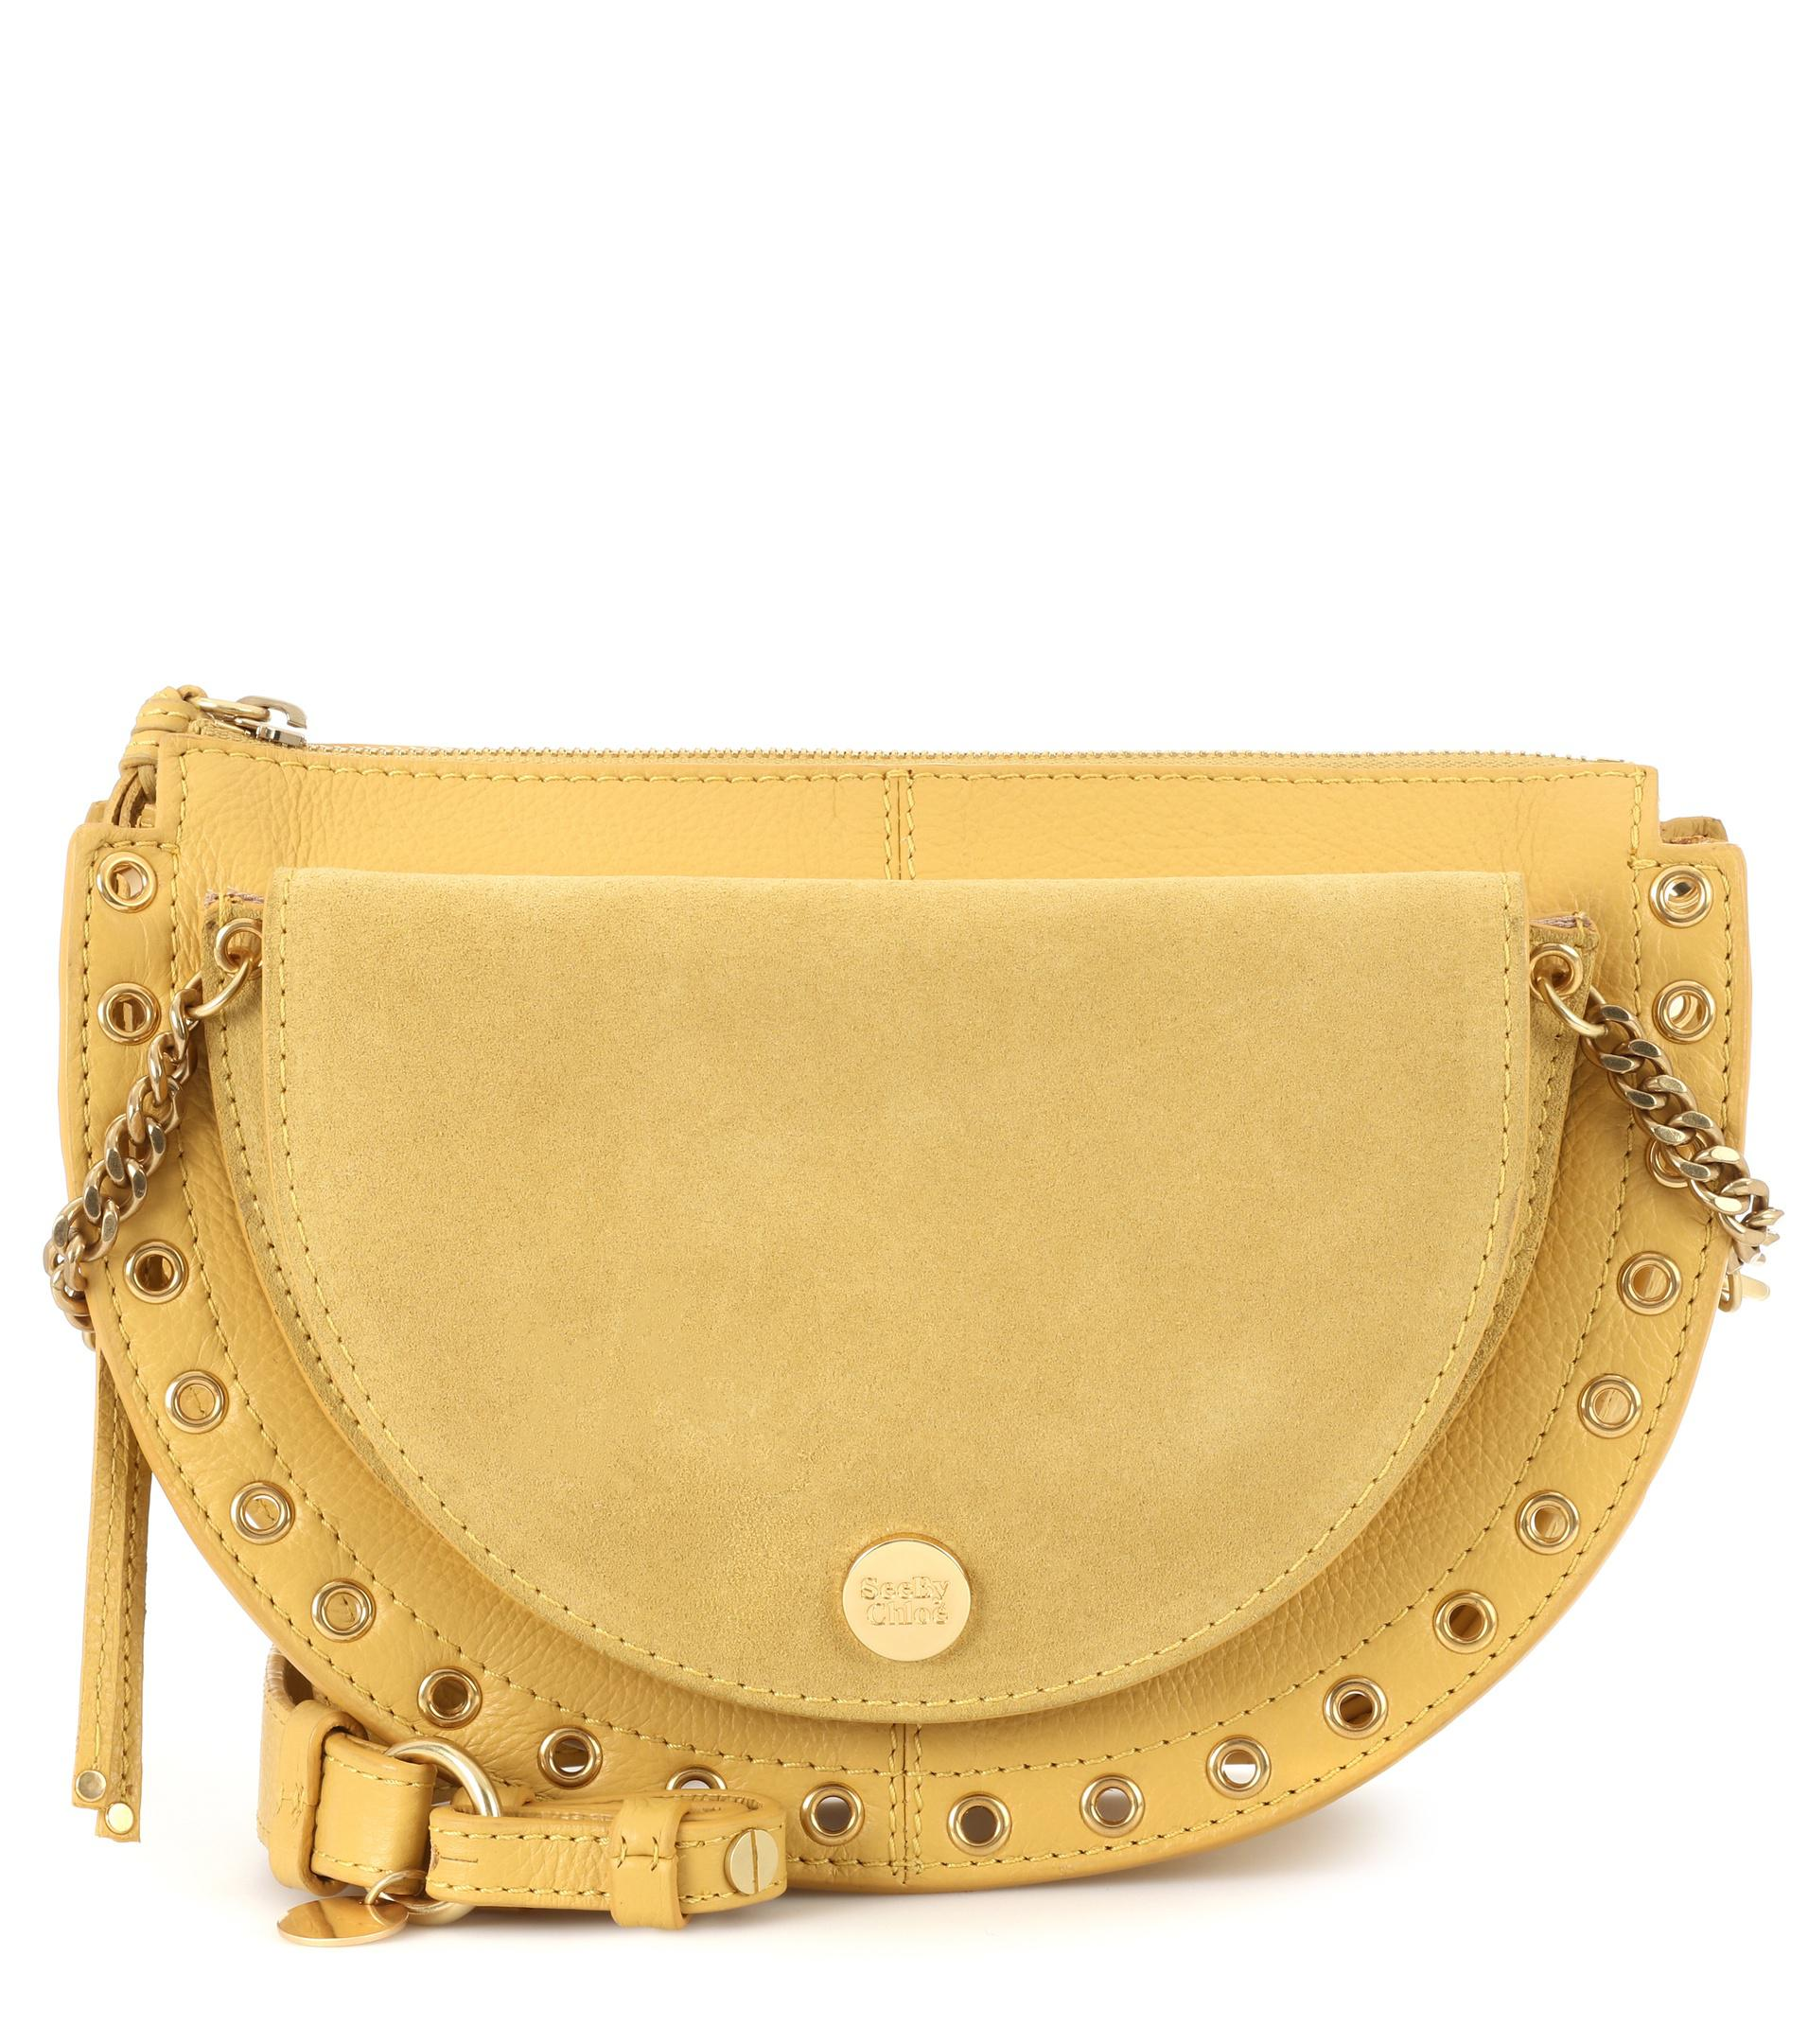 Bag Shoulder Chloé Lyst Kriss In By Leather Medium See Yellow Bgyw0Cqvw 7f21c84979a